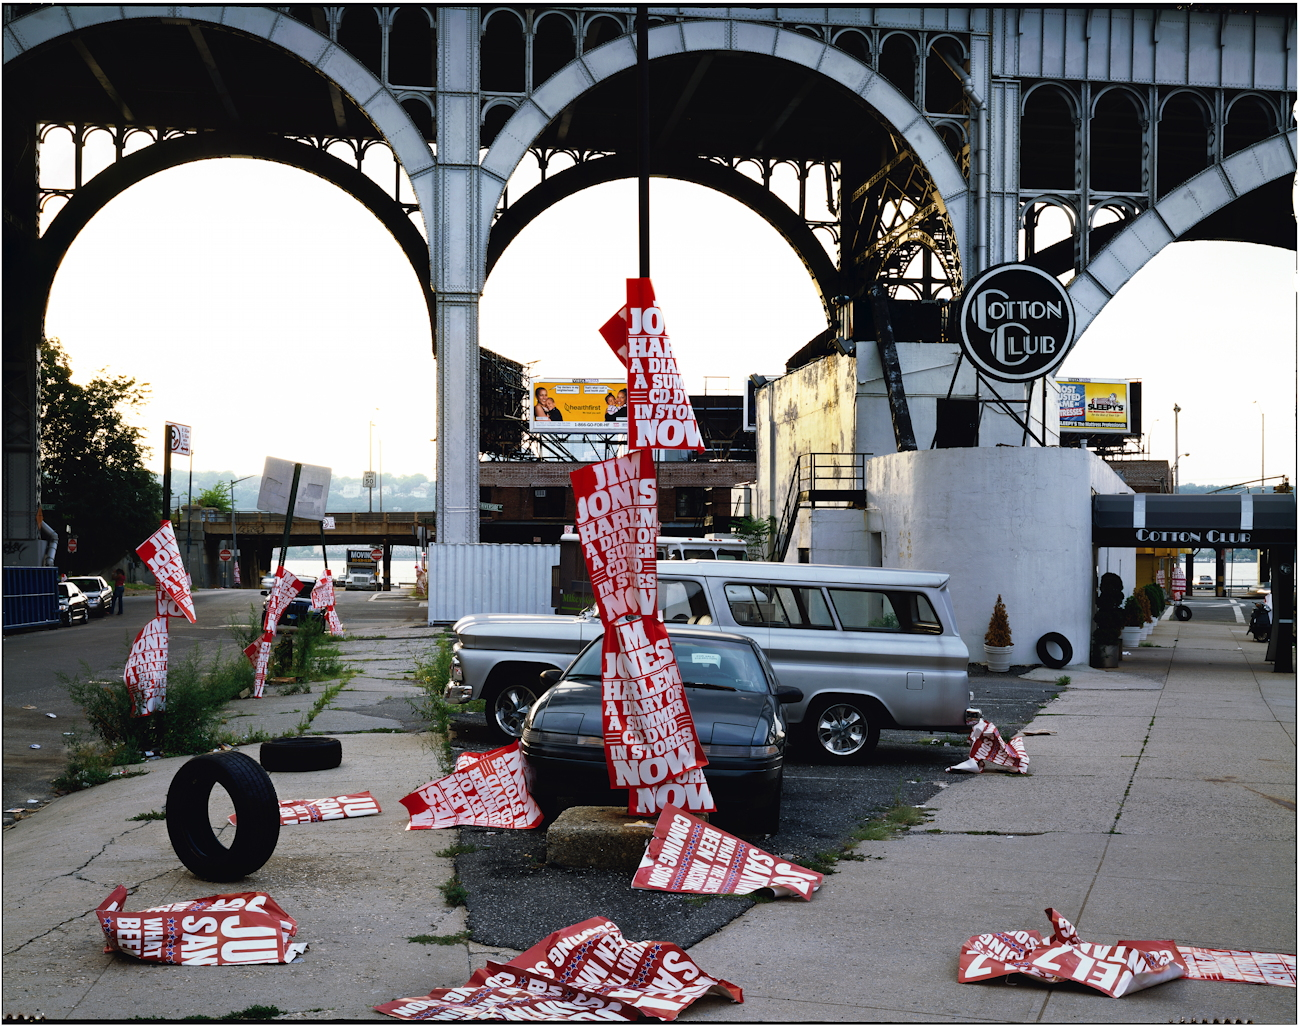 125th Street and West Side Highway, New York City, 2002